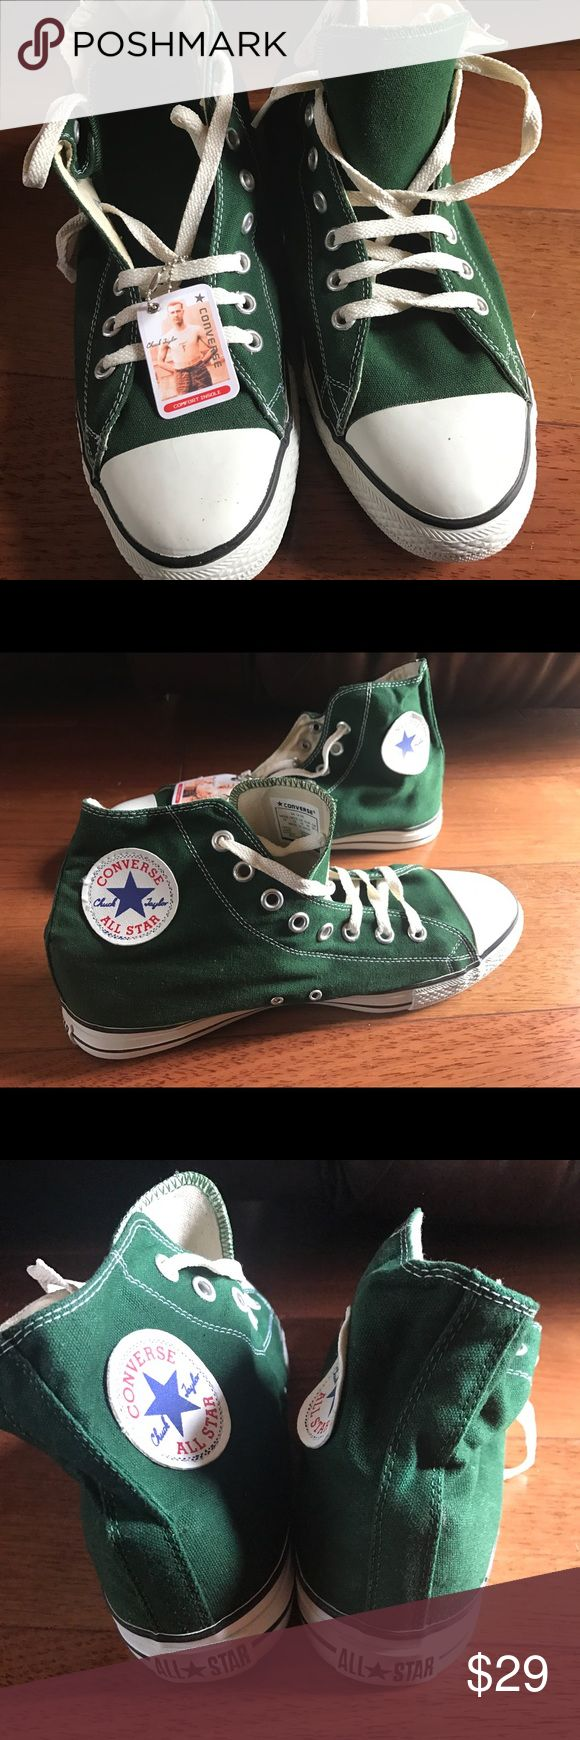 Converse All Star Hi Top Green Chuck Taylor Converse All Star Hi Top Green Chuck Taylor, Men's US 11 & 12, BRAND NEW NO BOX. Price Firm, No offers Converse Shoes